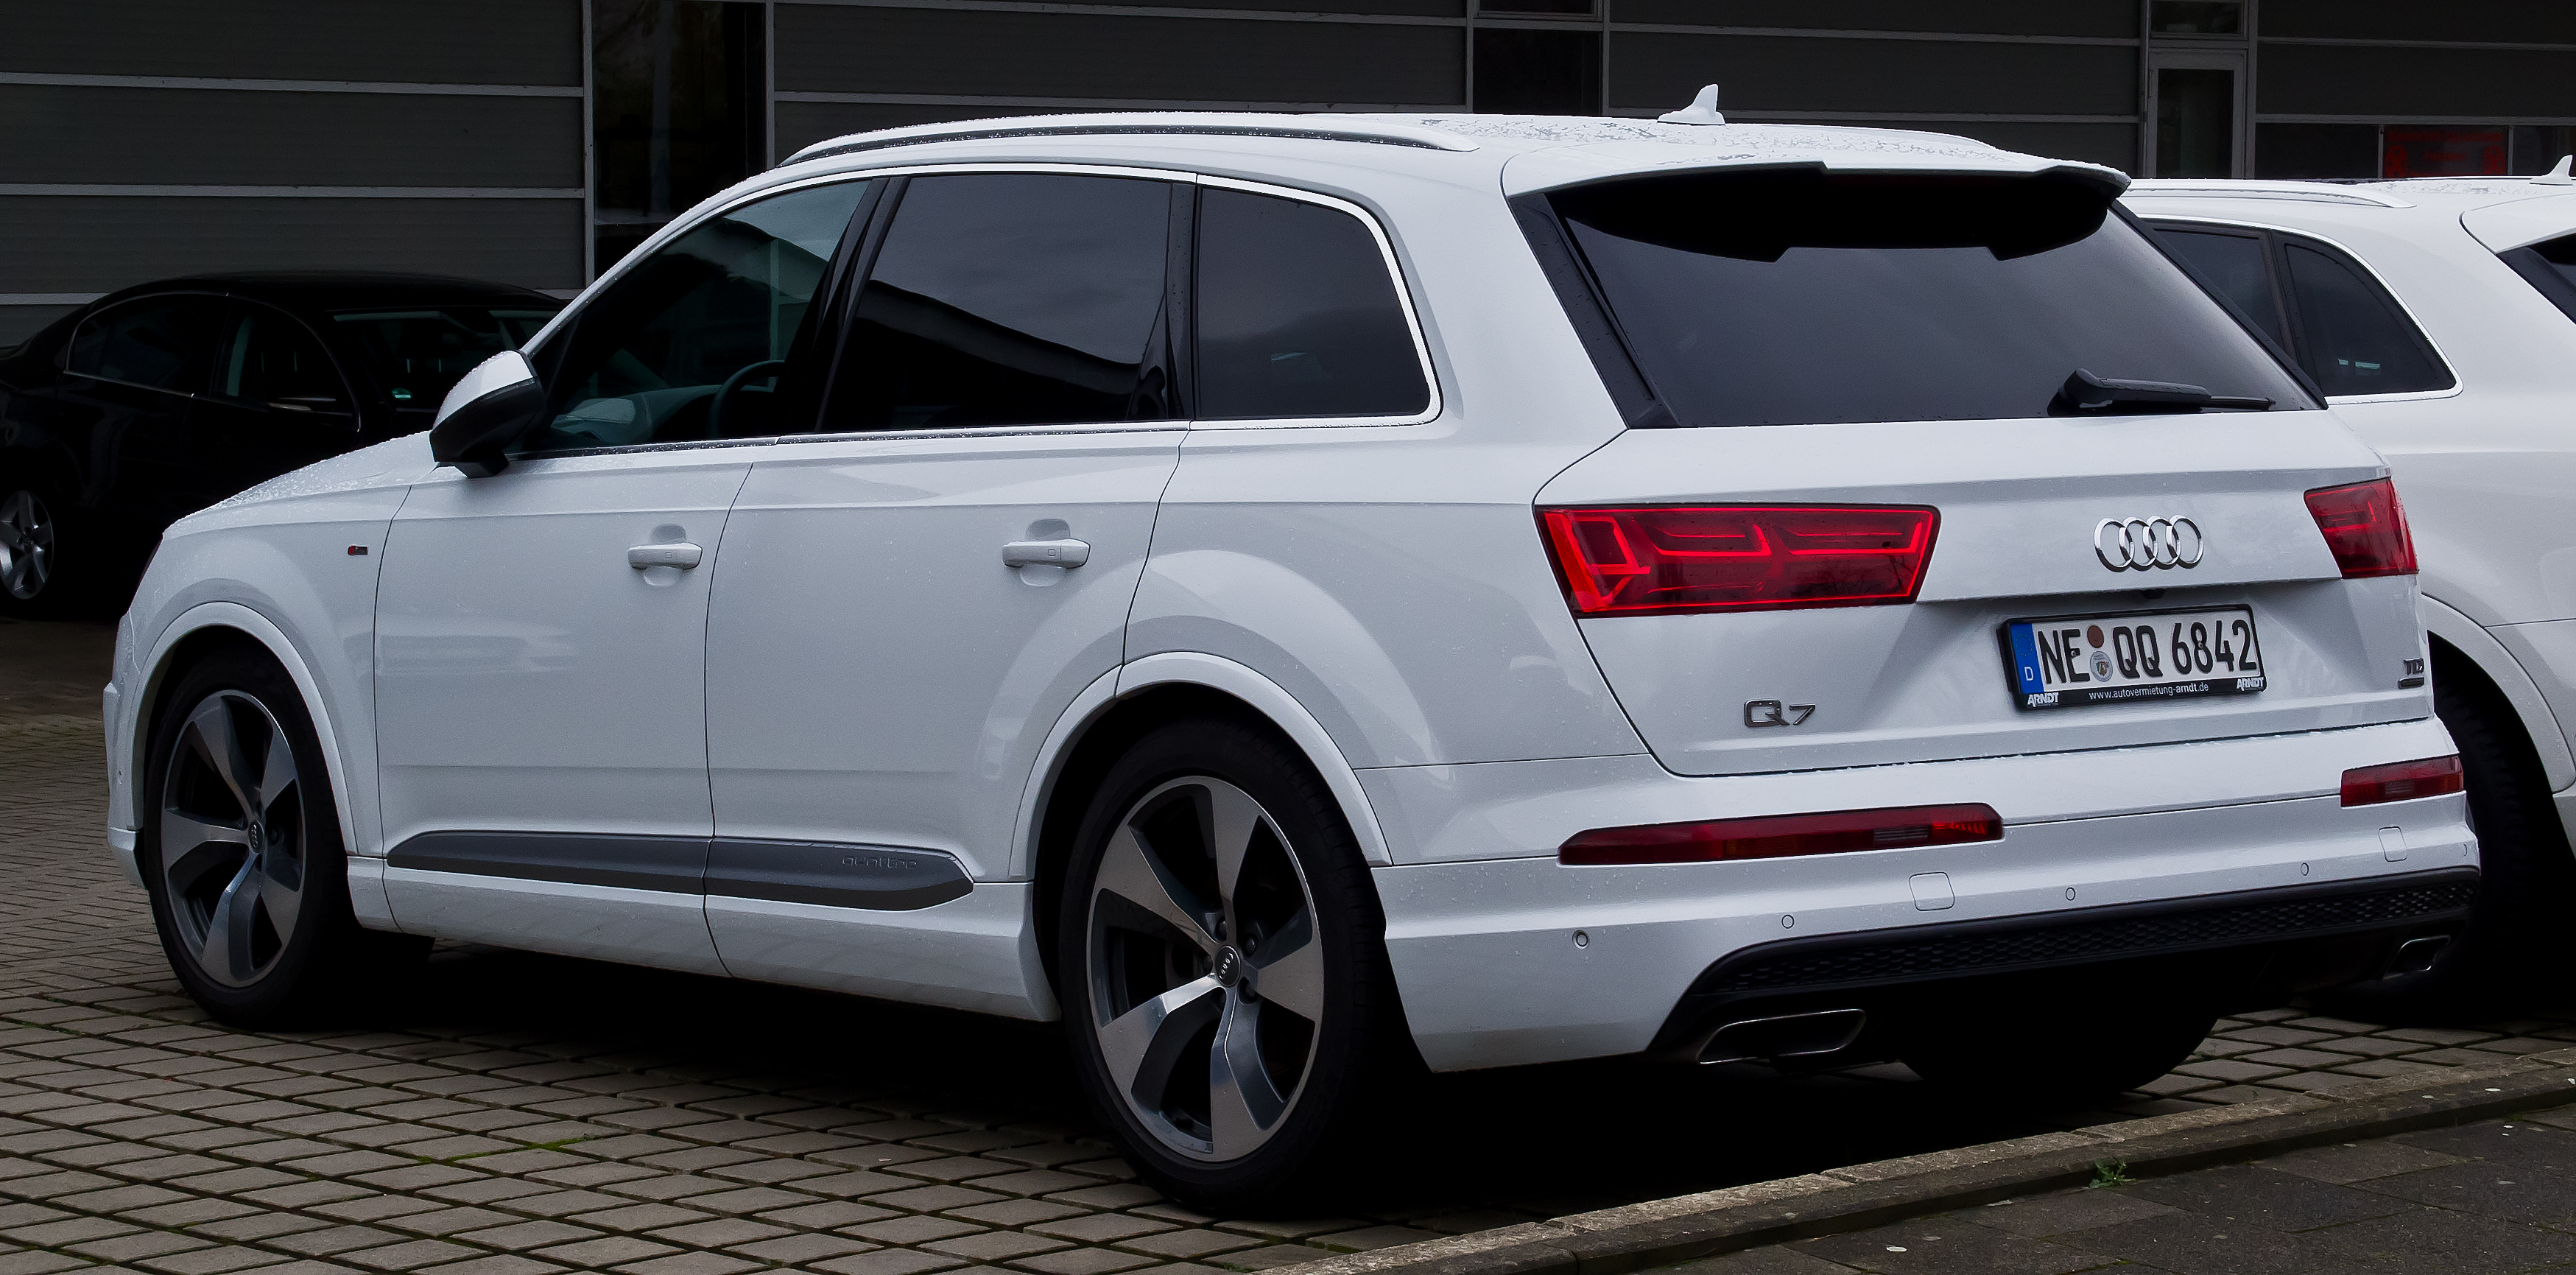 file audi q7 3 0 tdi quattro s line ii heckansicht 3 januar 2016 d wikipedia. Black Bedroom Furniture Sets. Home Design Ideas